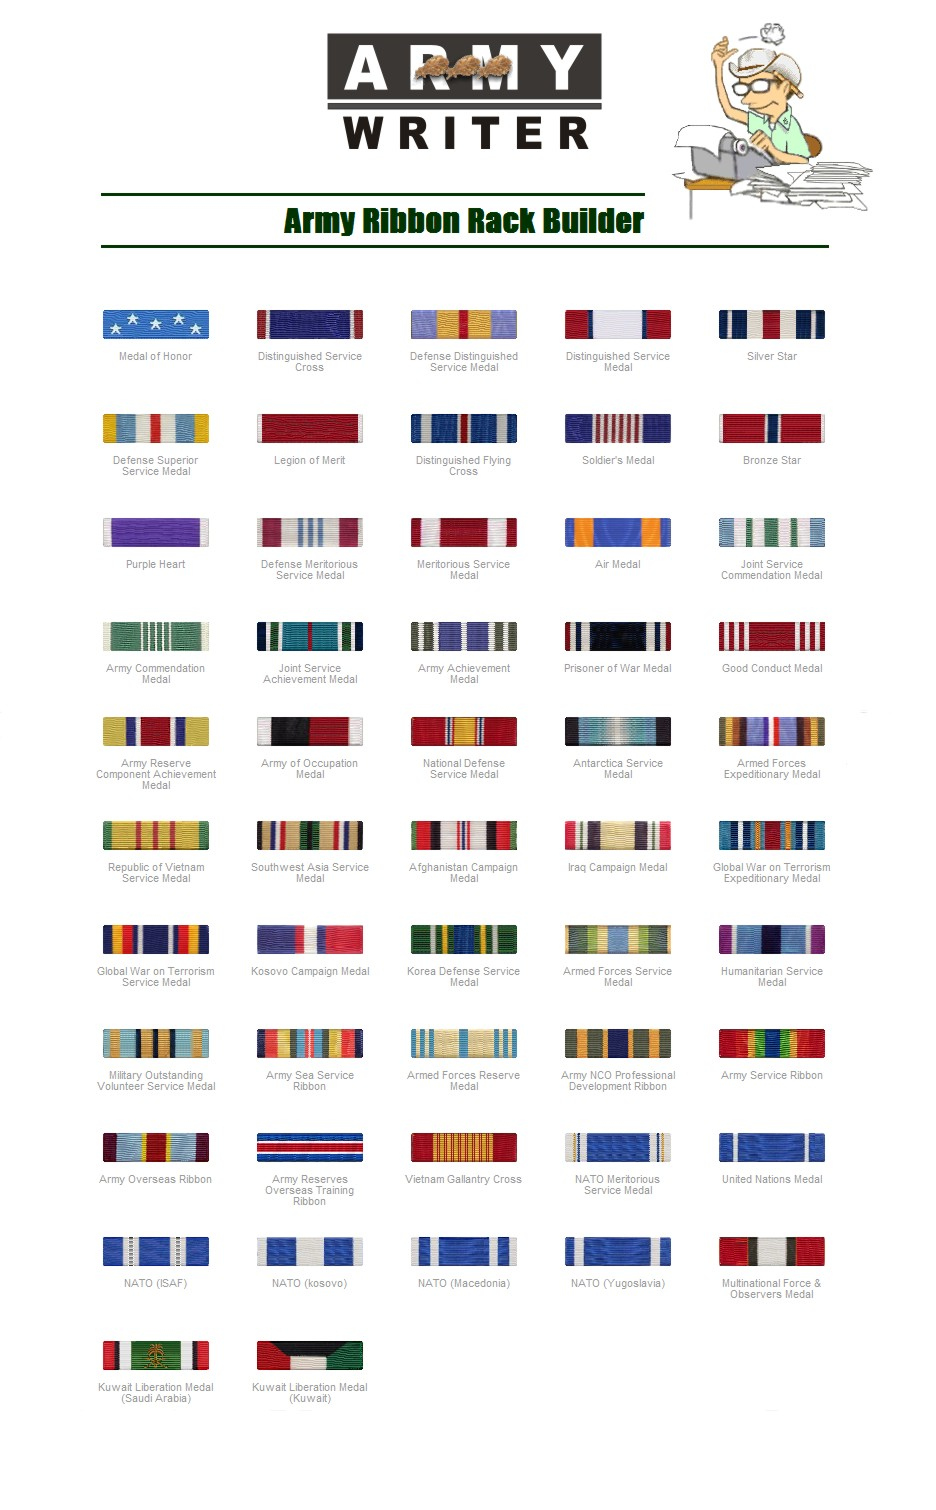 Us navy medals and ribbons chart for Army awards and decoration